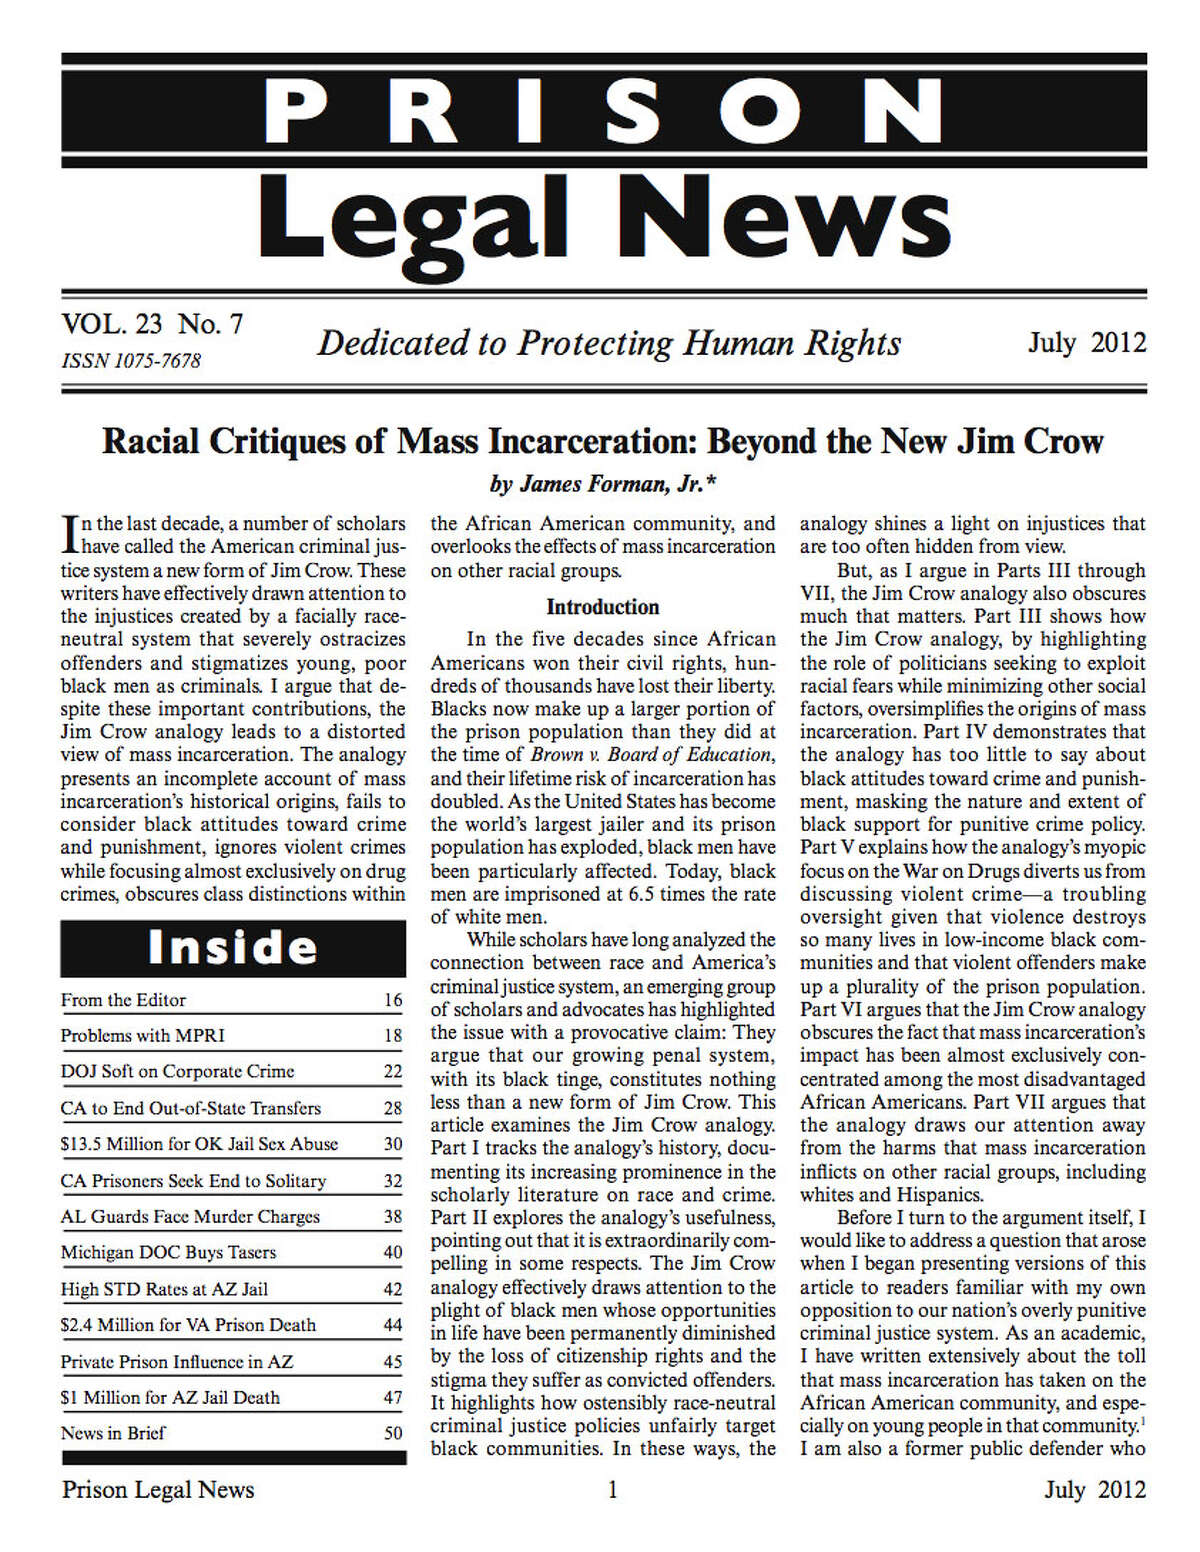 The July 2012 issue of Prison Legal News.